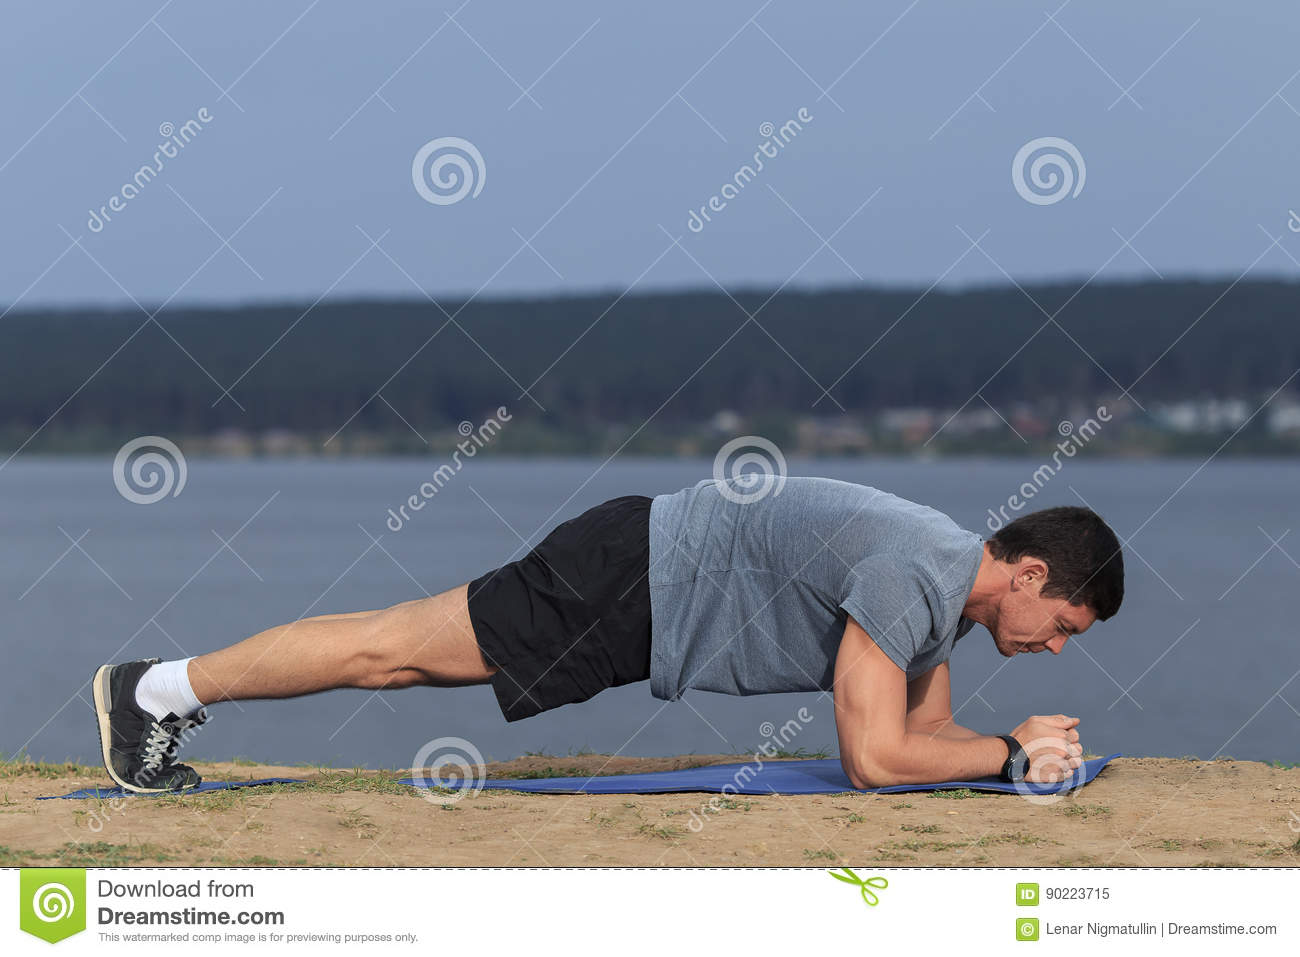 Crossfit training fitness man doing plank core exercise working out his midsection core muscles.